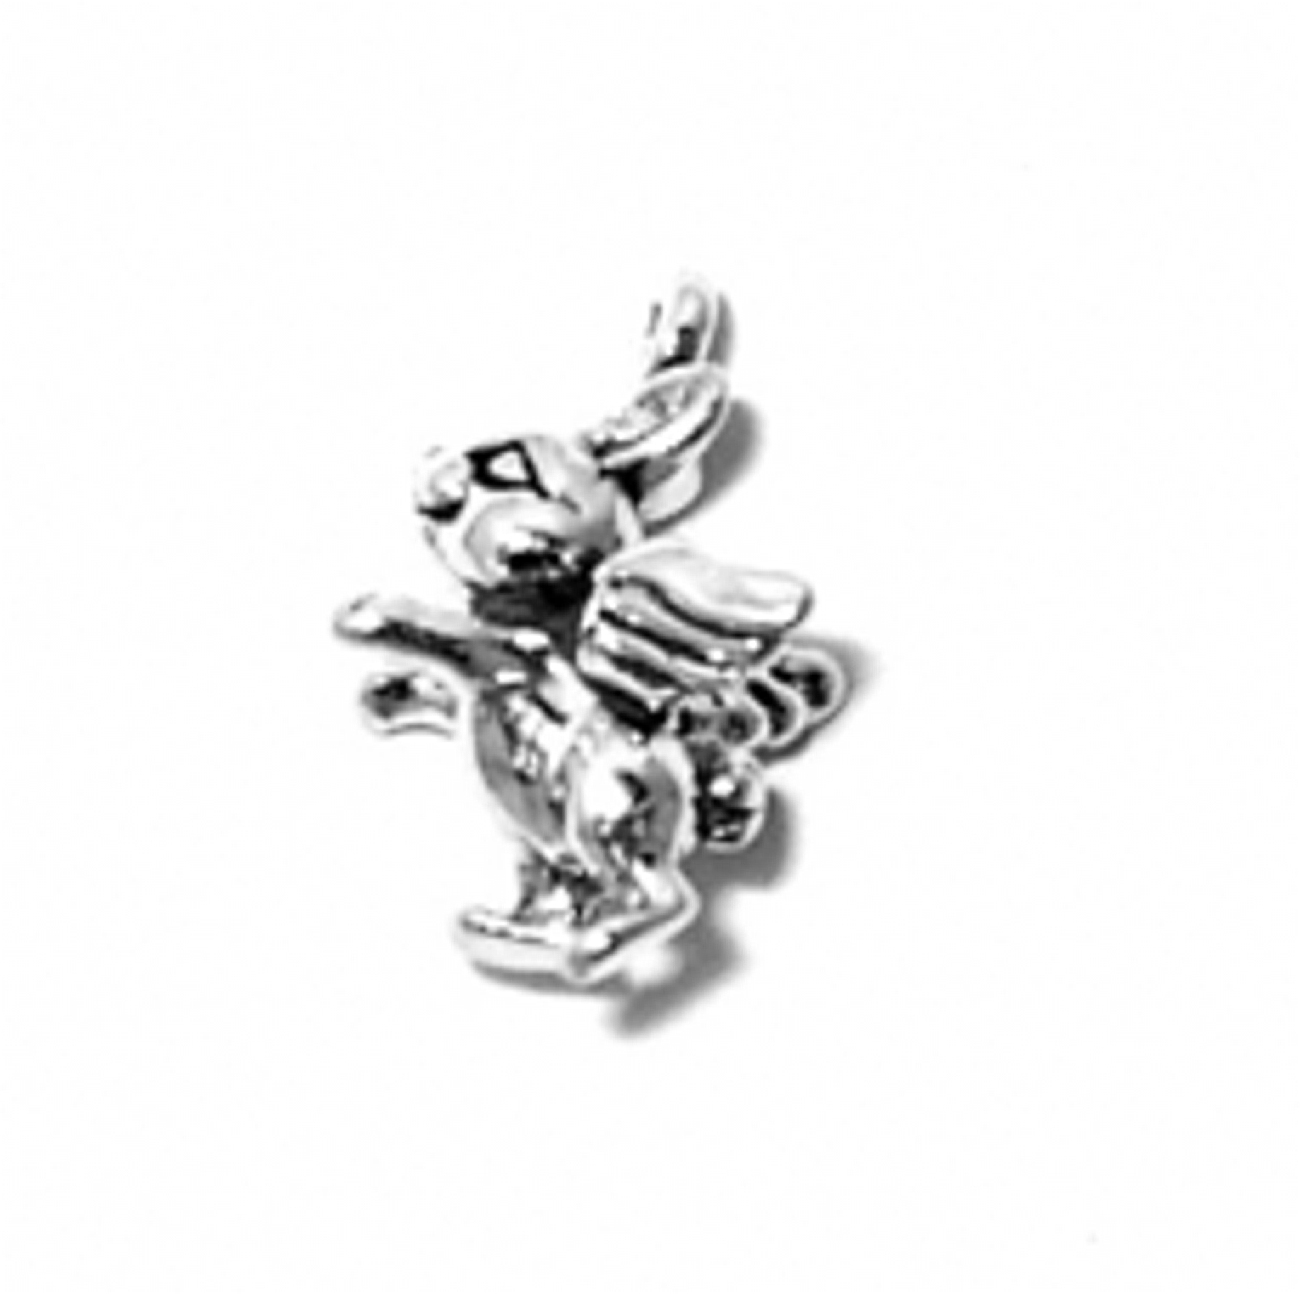 Sterling Silver 7 4.5mm Charm Bracelet With Attached 3D Decorative Snowboard Charm